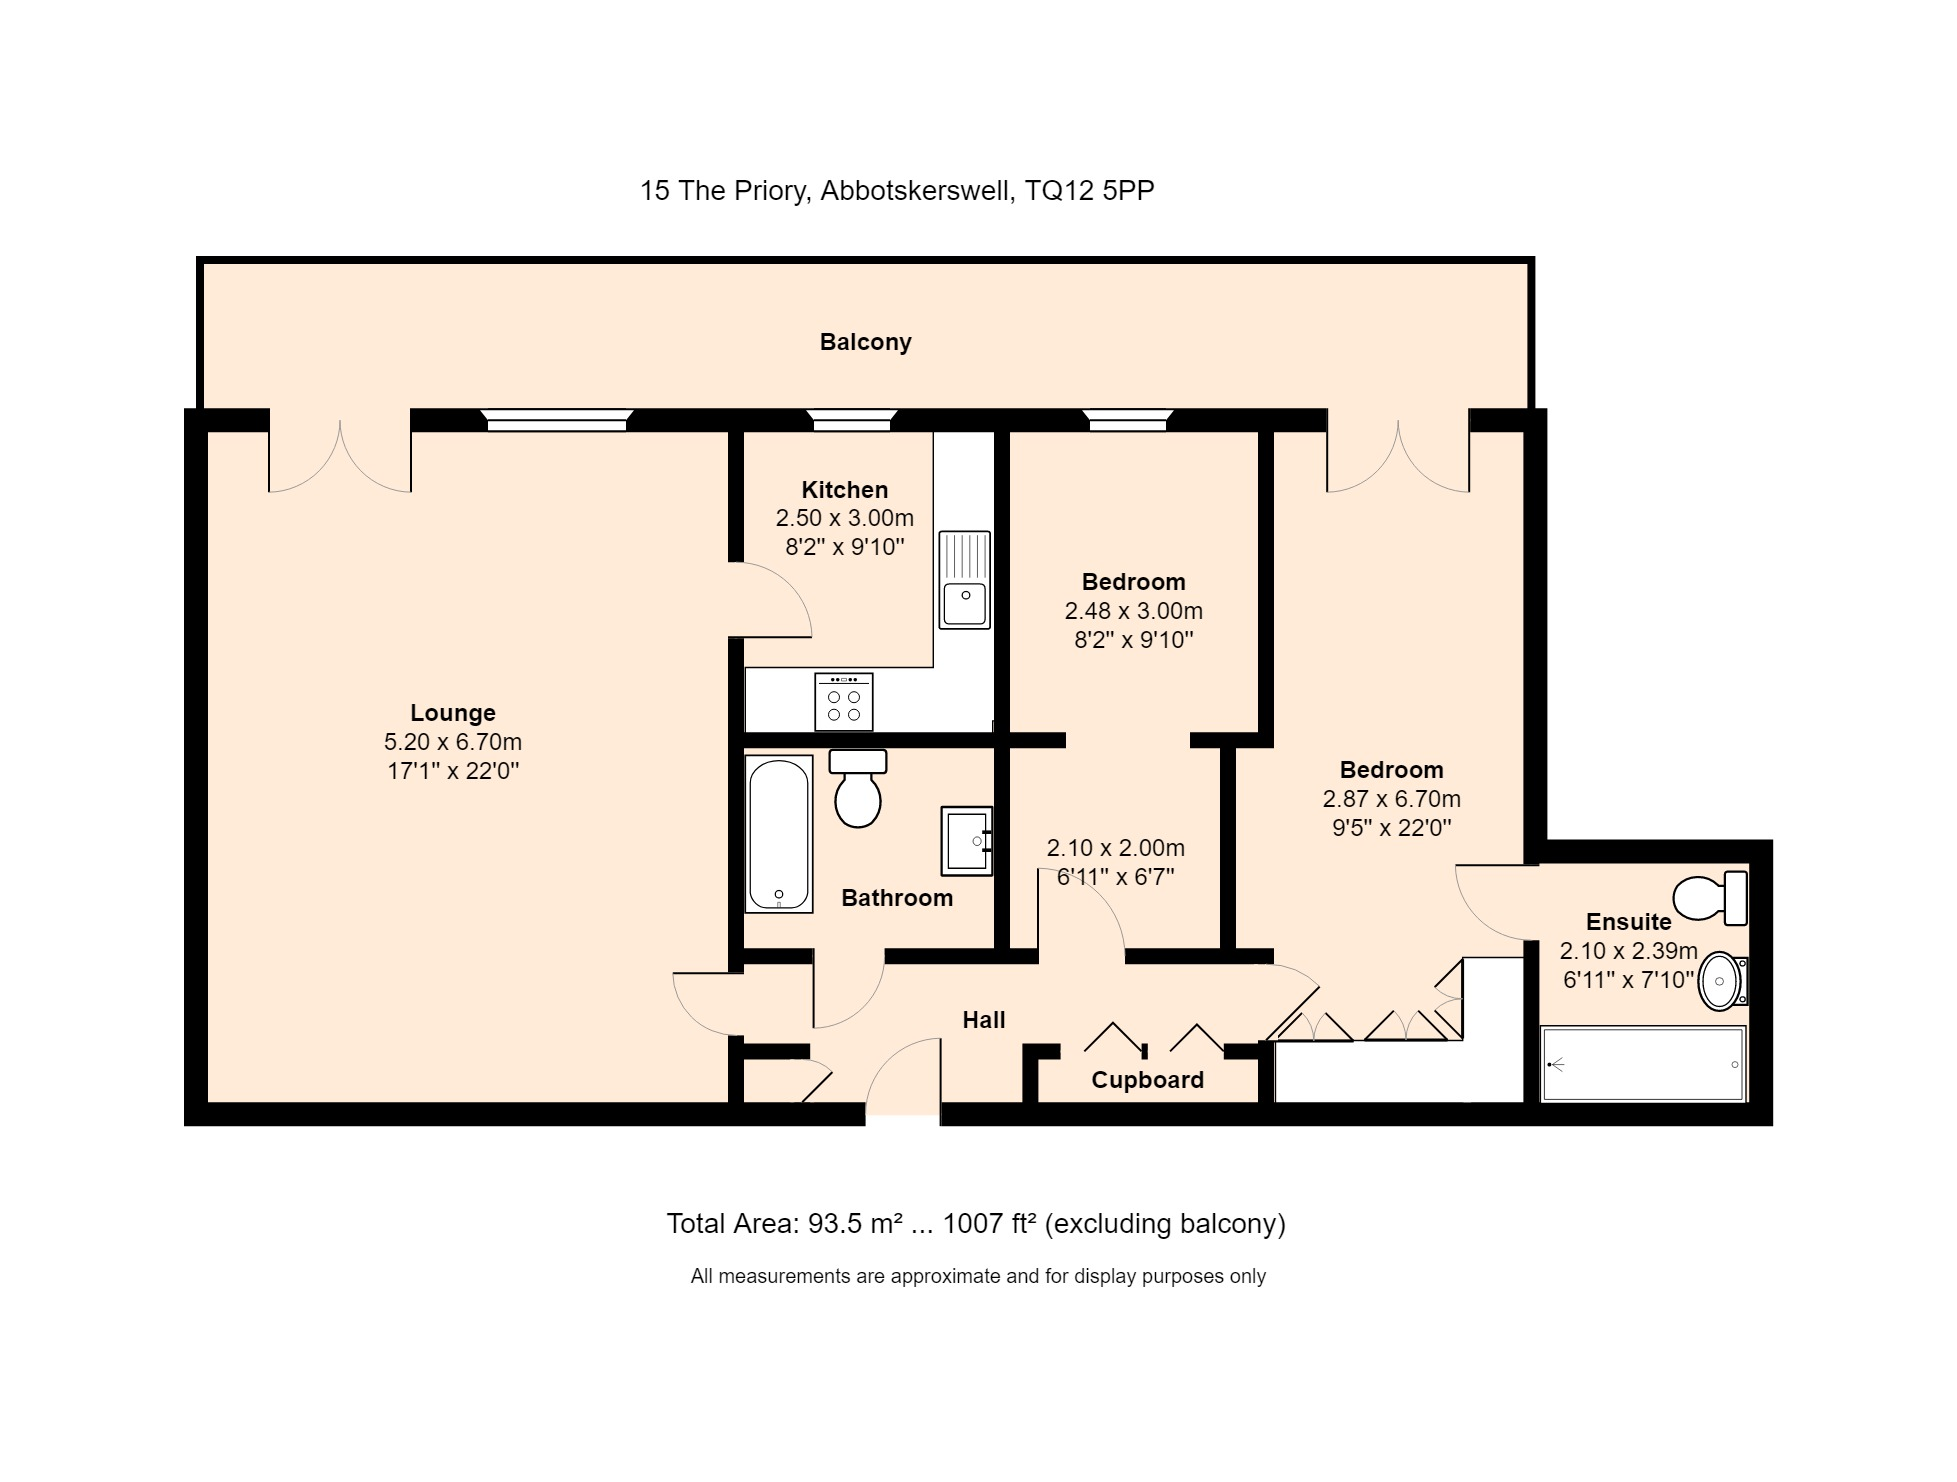 15 The Priory Floorplan